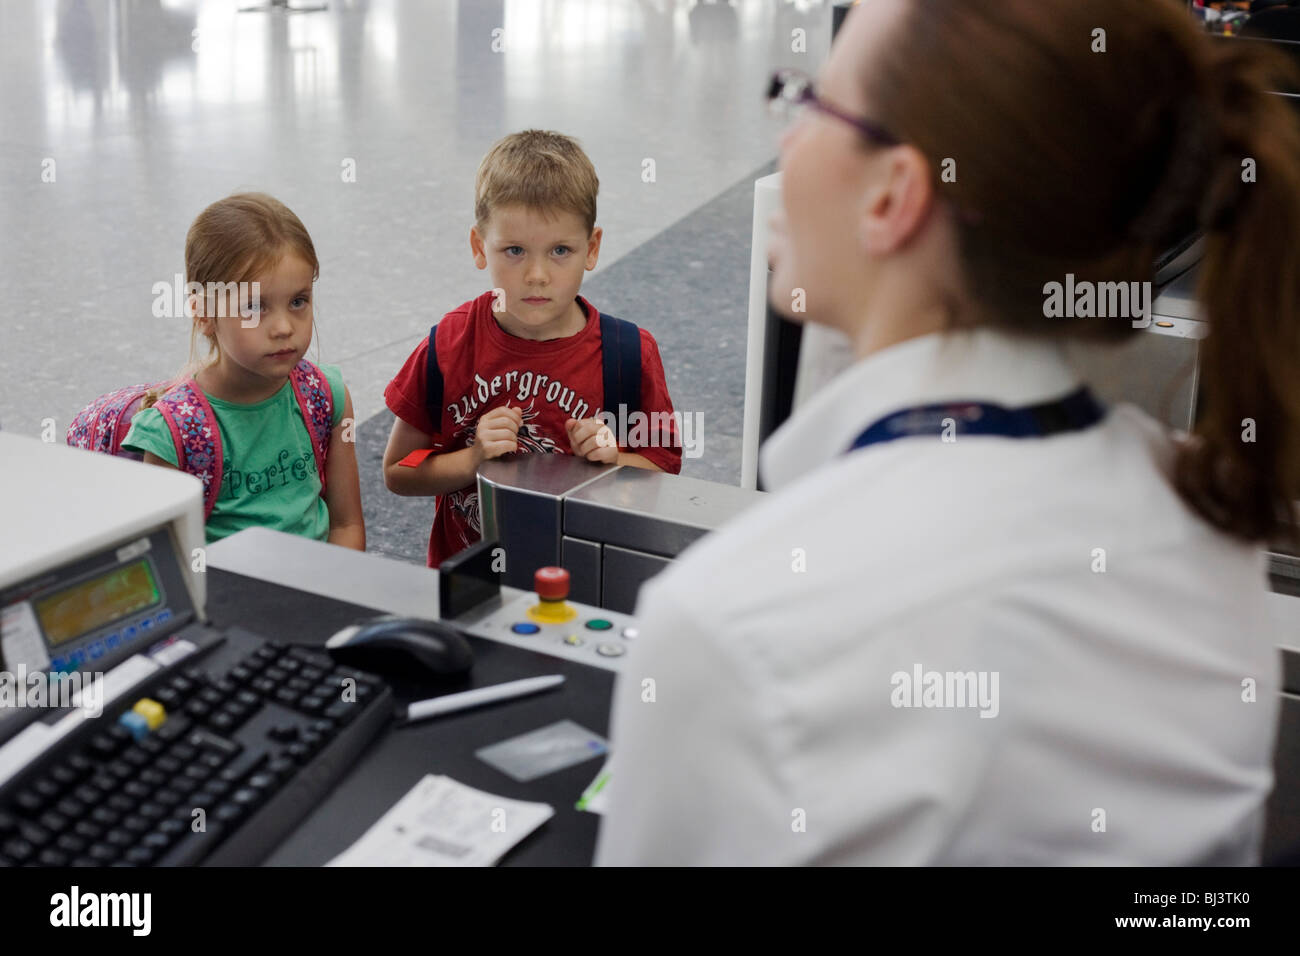 Young brother and sister look on in awe while a British Airways check-in lady asks security questions. - Stock Image